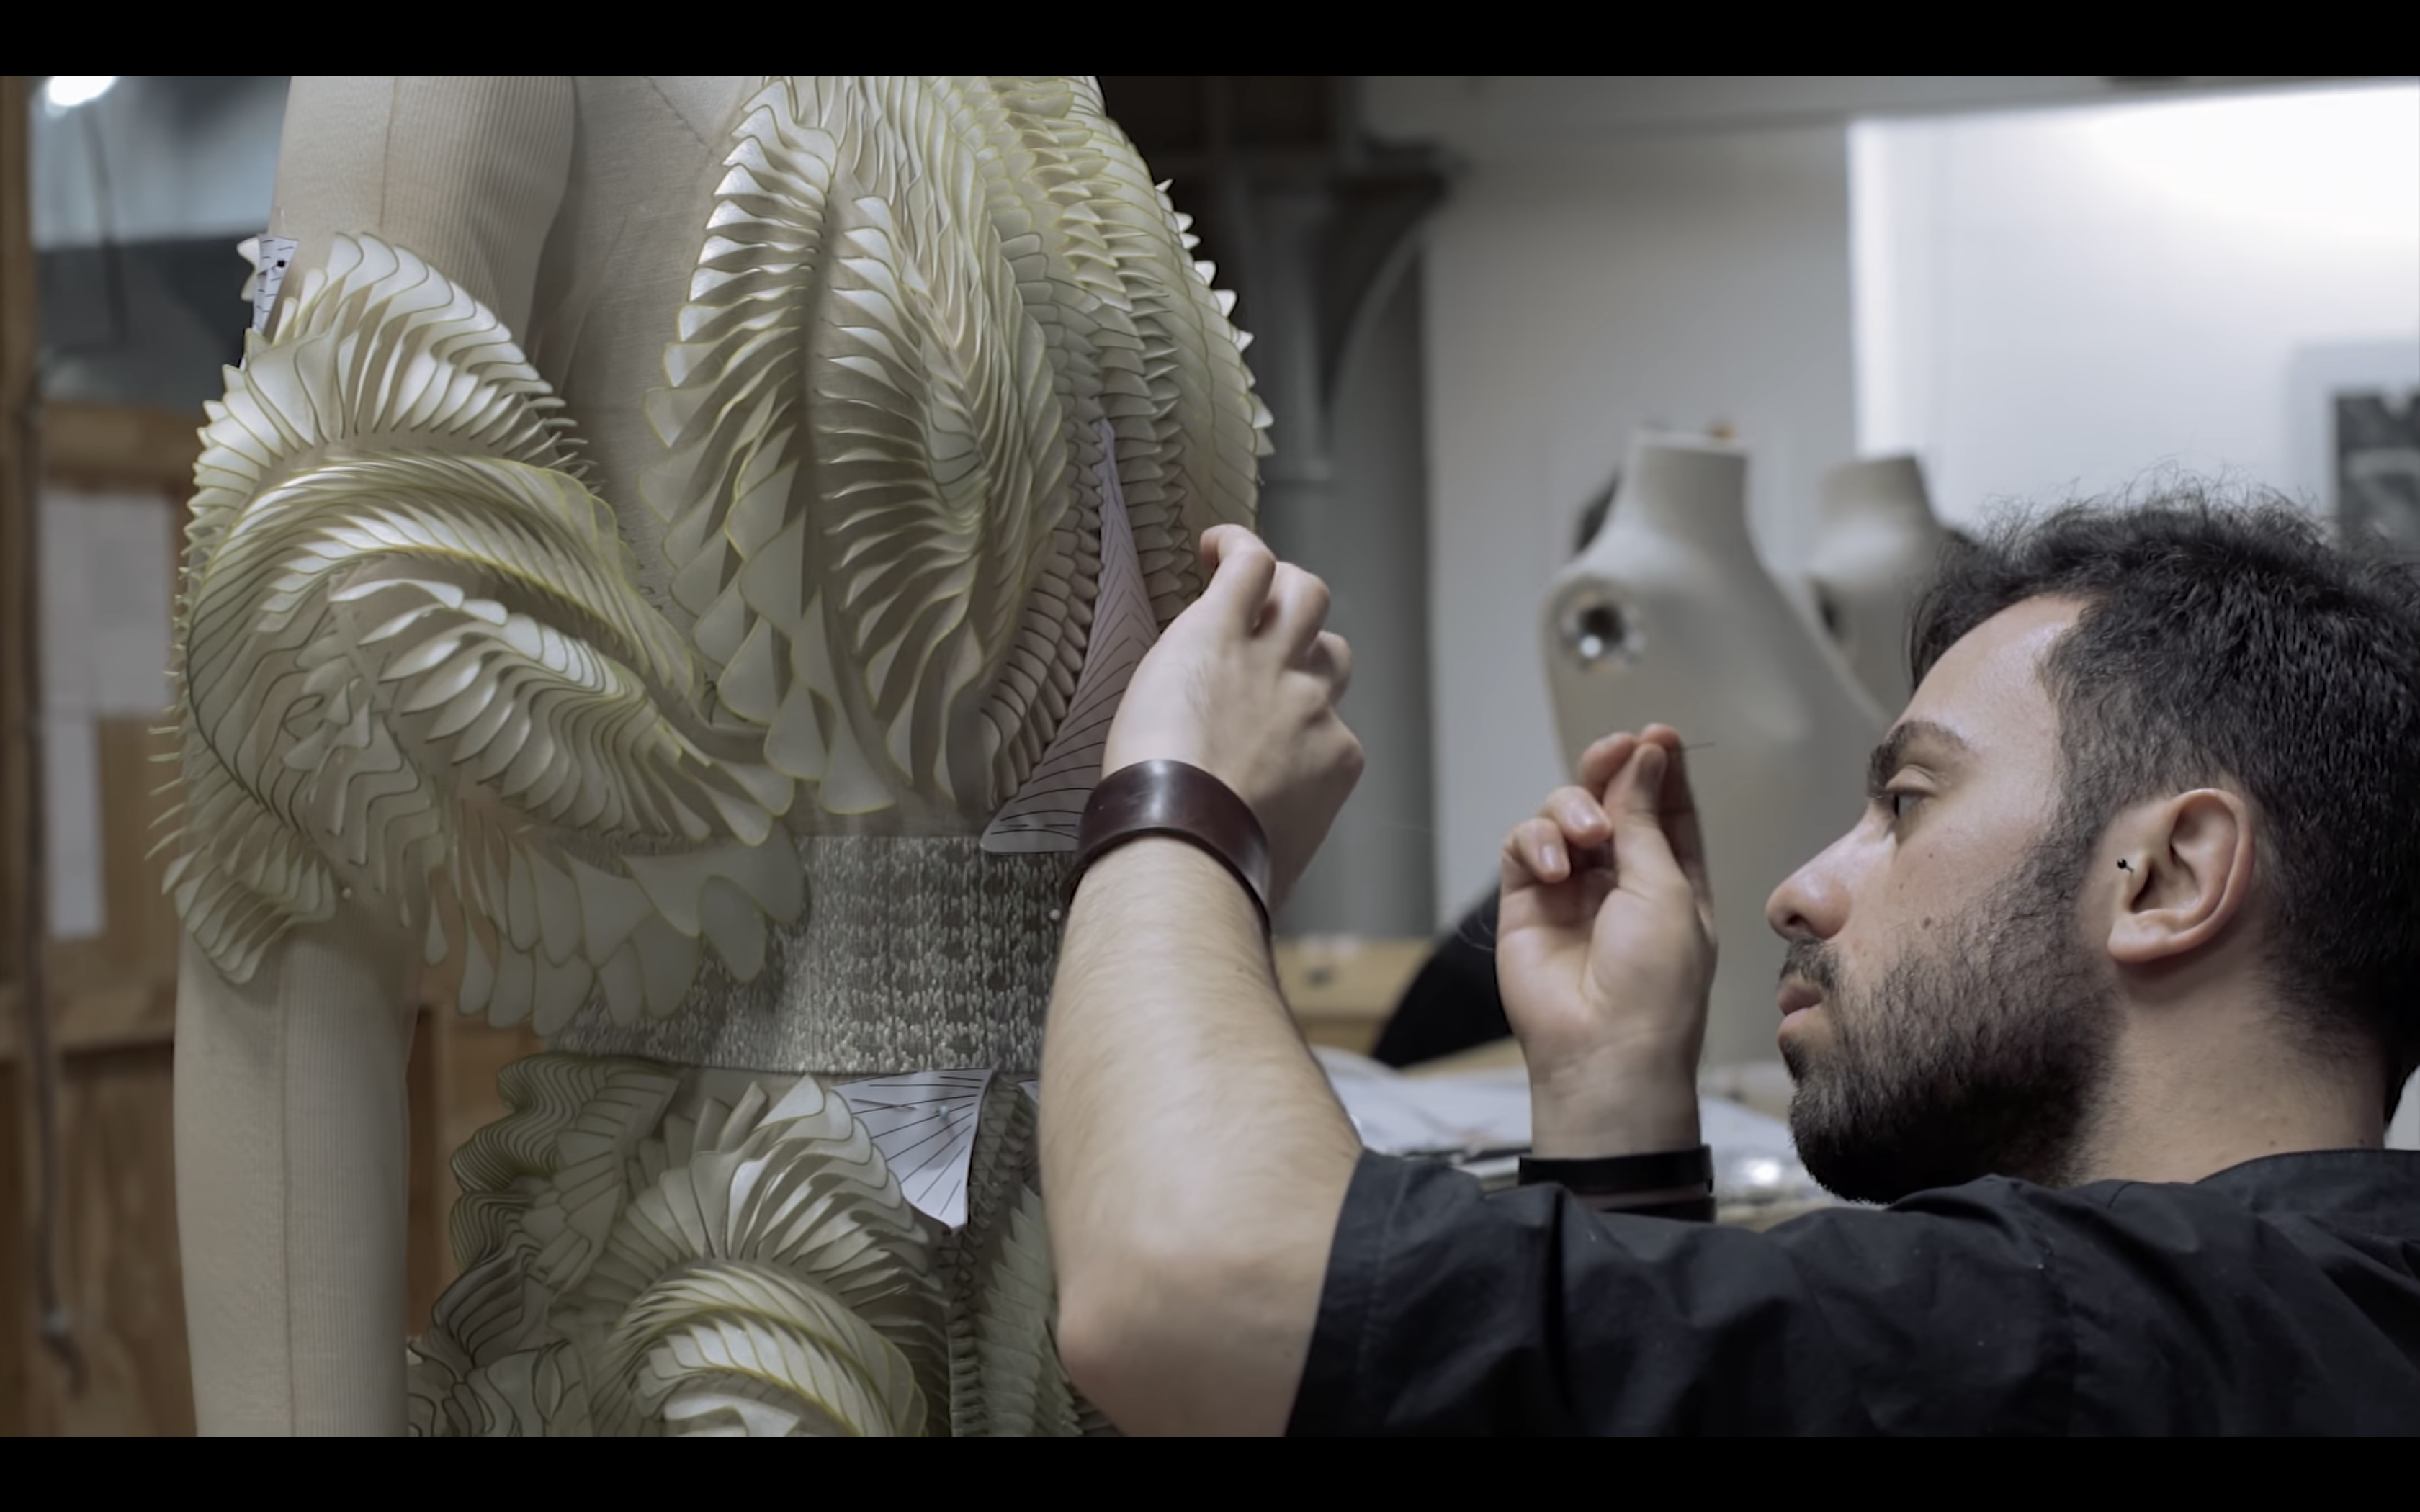 A still from the 'Ludi Naturae' process video filmed by Ryan McDaniels